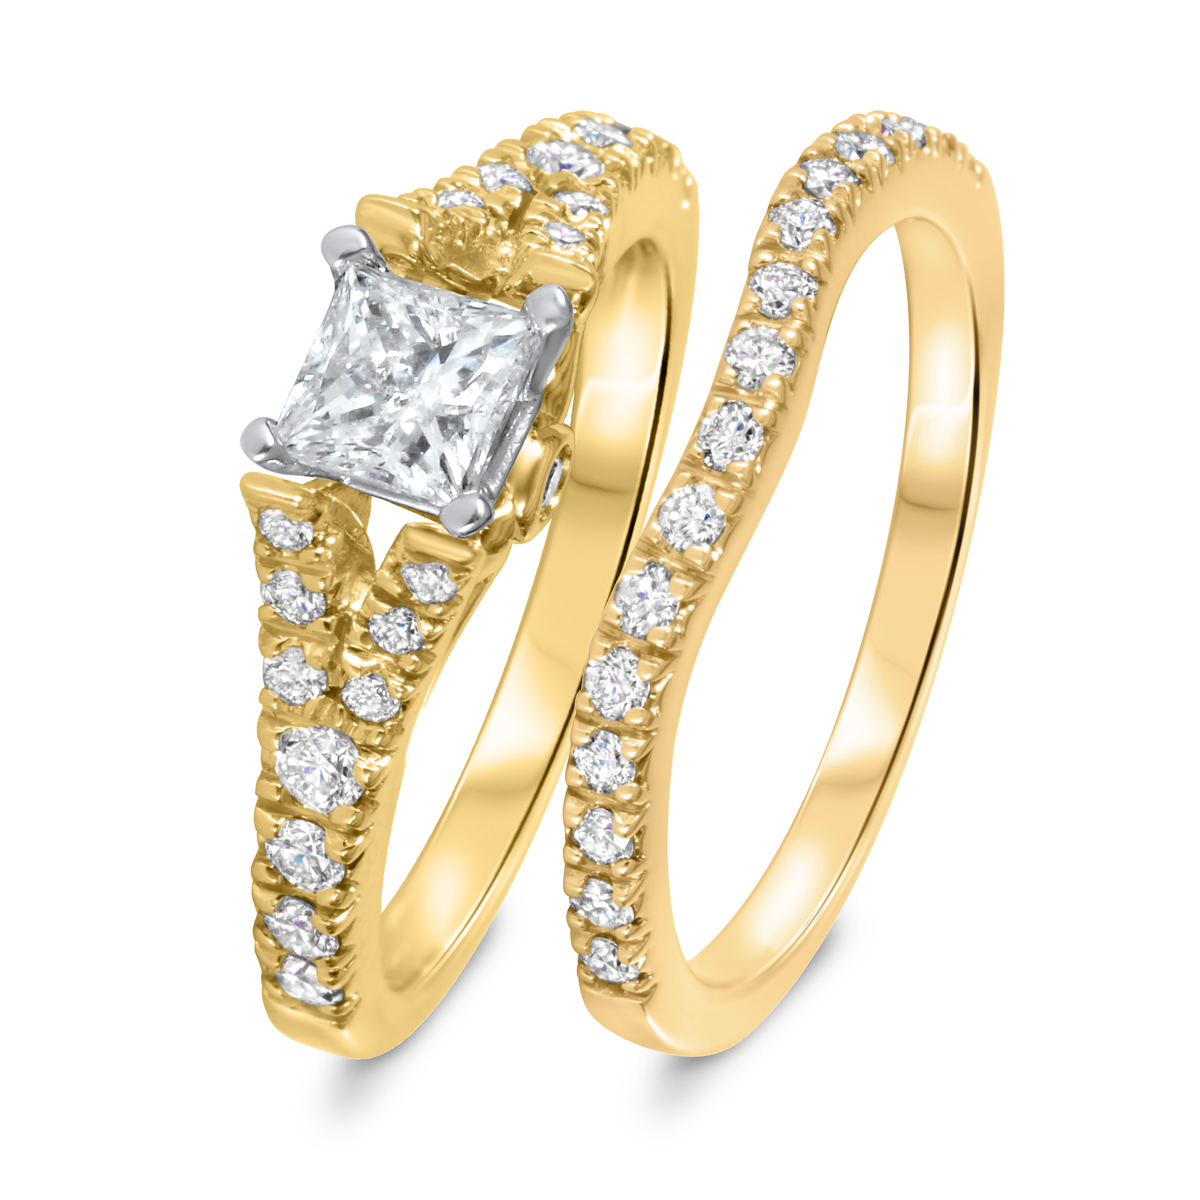 1 1/4 CT. T.W. Diamond Women's Bridal Wedding Ring Set 10K Yellow Gold